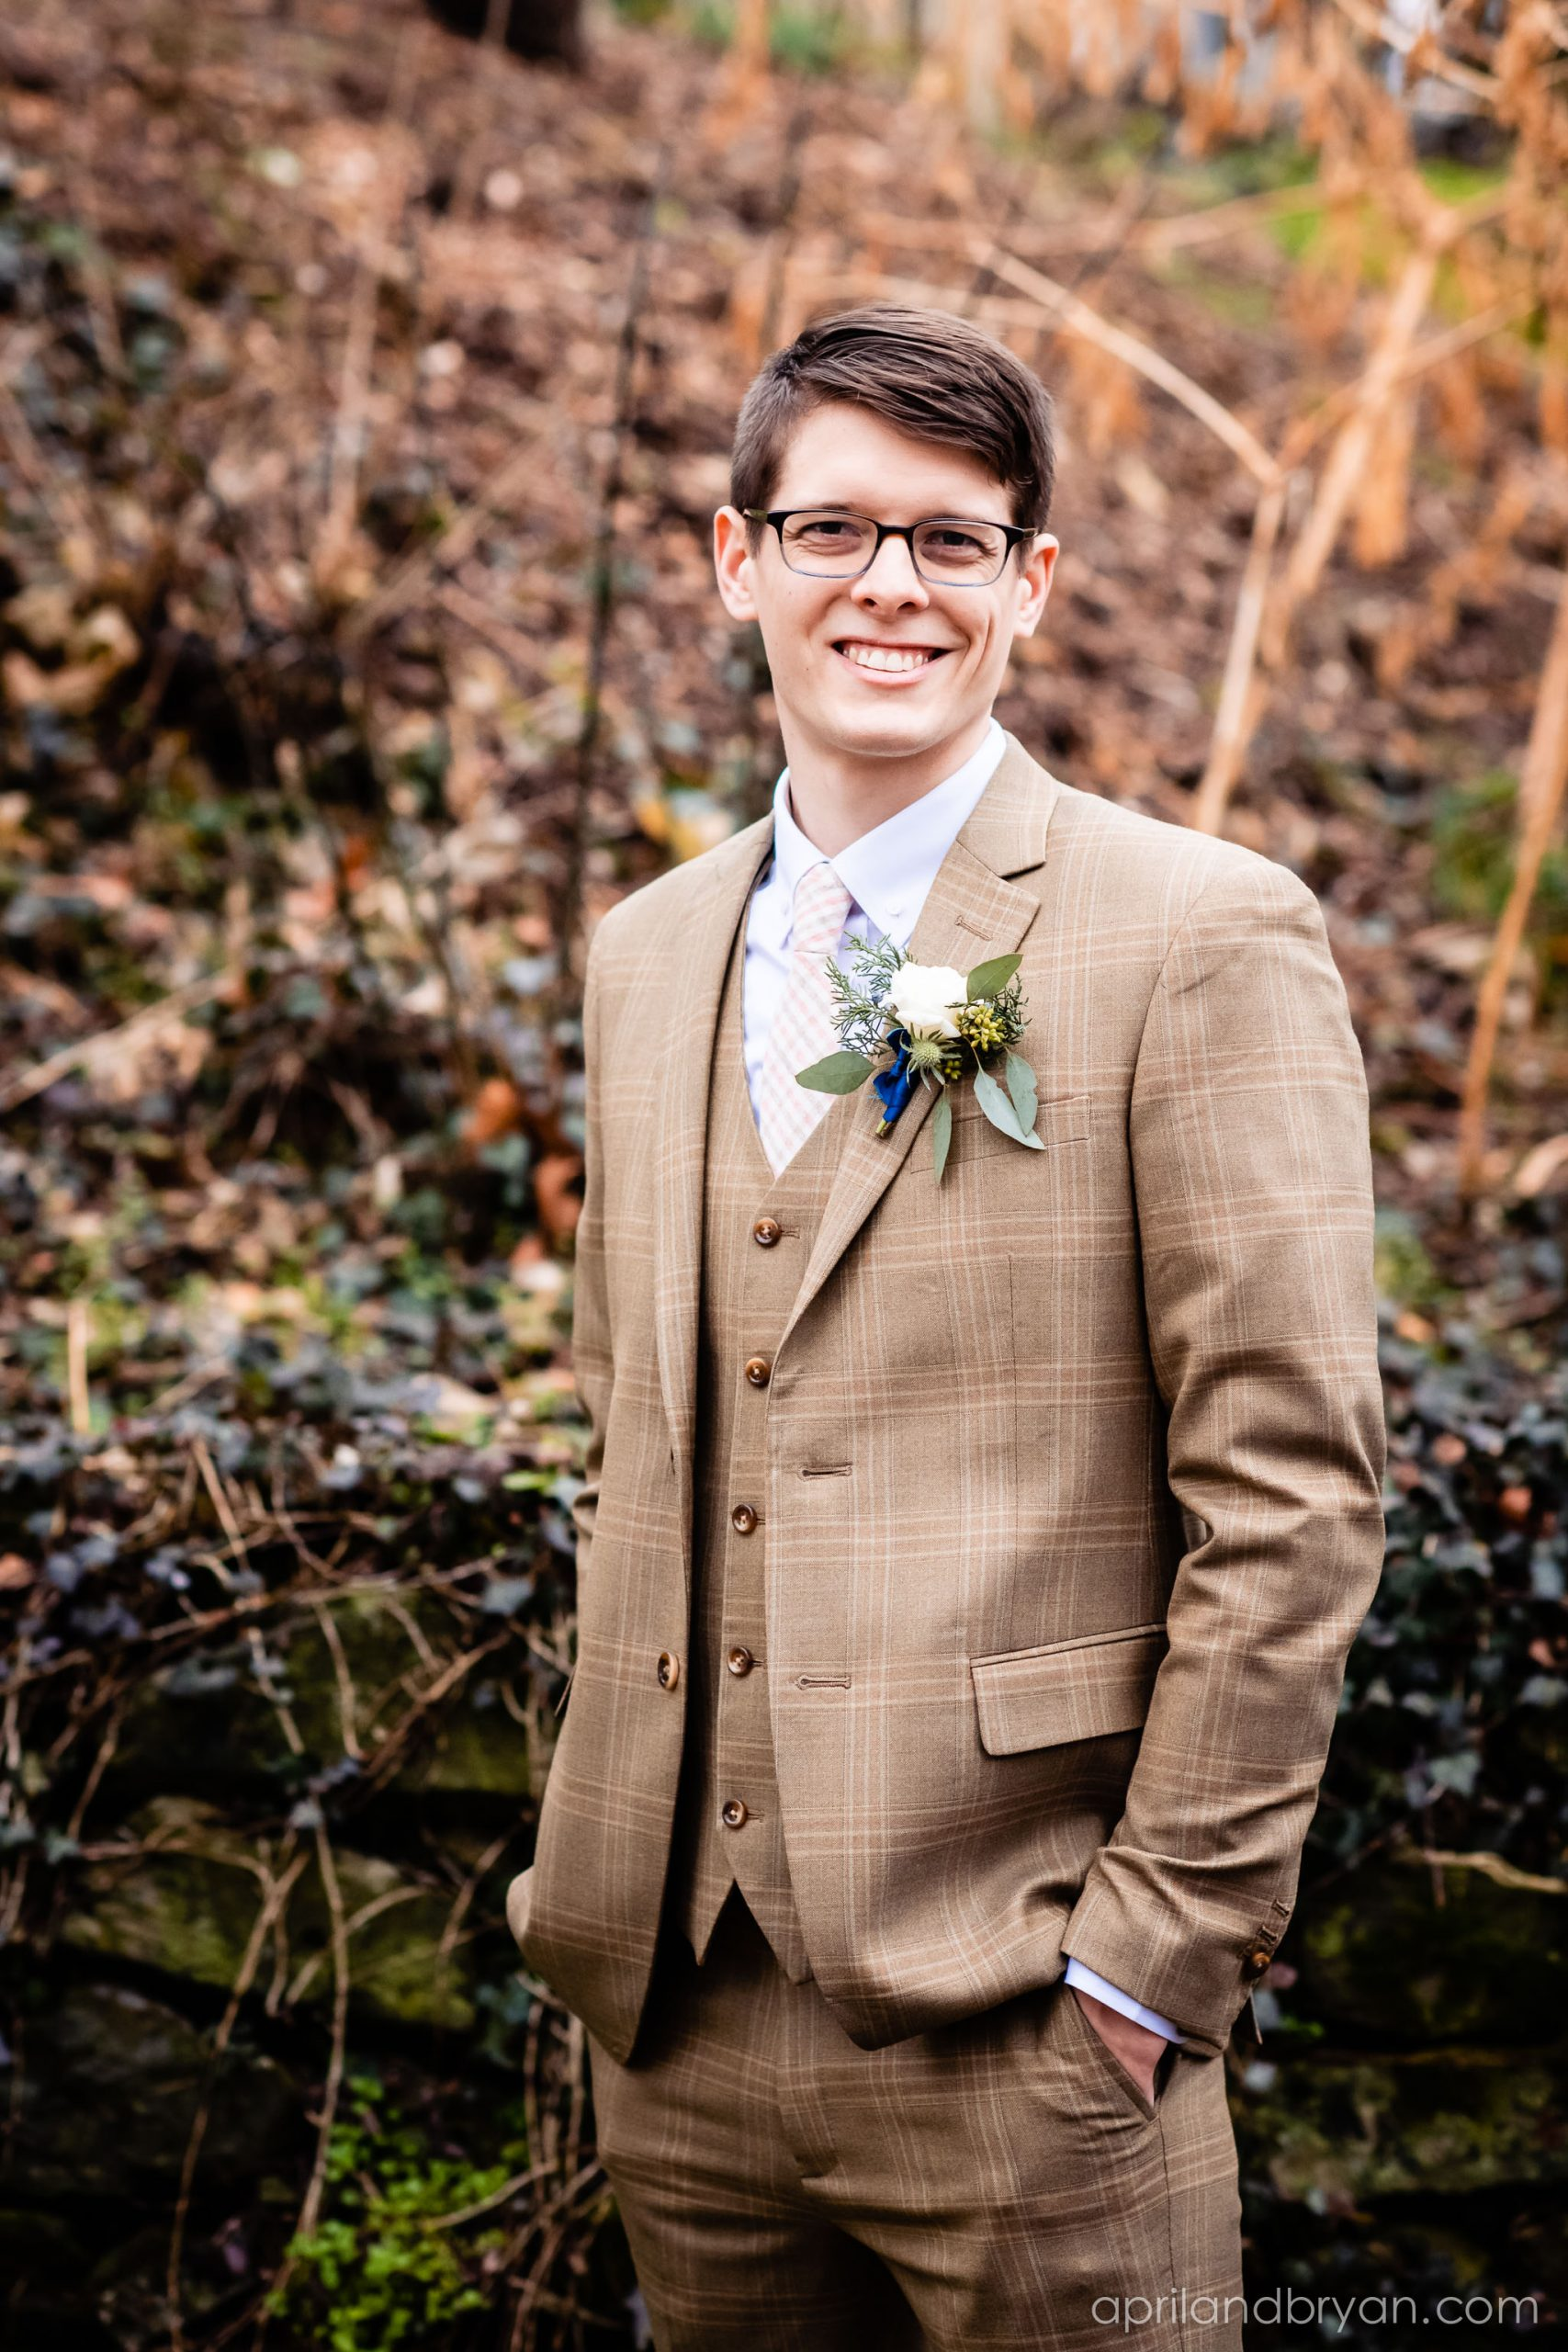 Brown plaid tuxedos used to be out, but this dashing groom proves it is totally doable. Hannah and Ethan Farrell had their classic romantic styled wedding held at their home in Mount Joy, followed by a reception at the catacombs underneath Bube's Brewery. Photographed by April & Bryan Photography, the couple had the opportunity to showcase their early 1900s style and accommodate a small guest list. Featured on Dream Weddings.